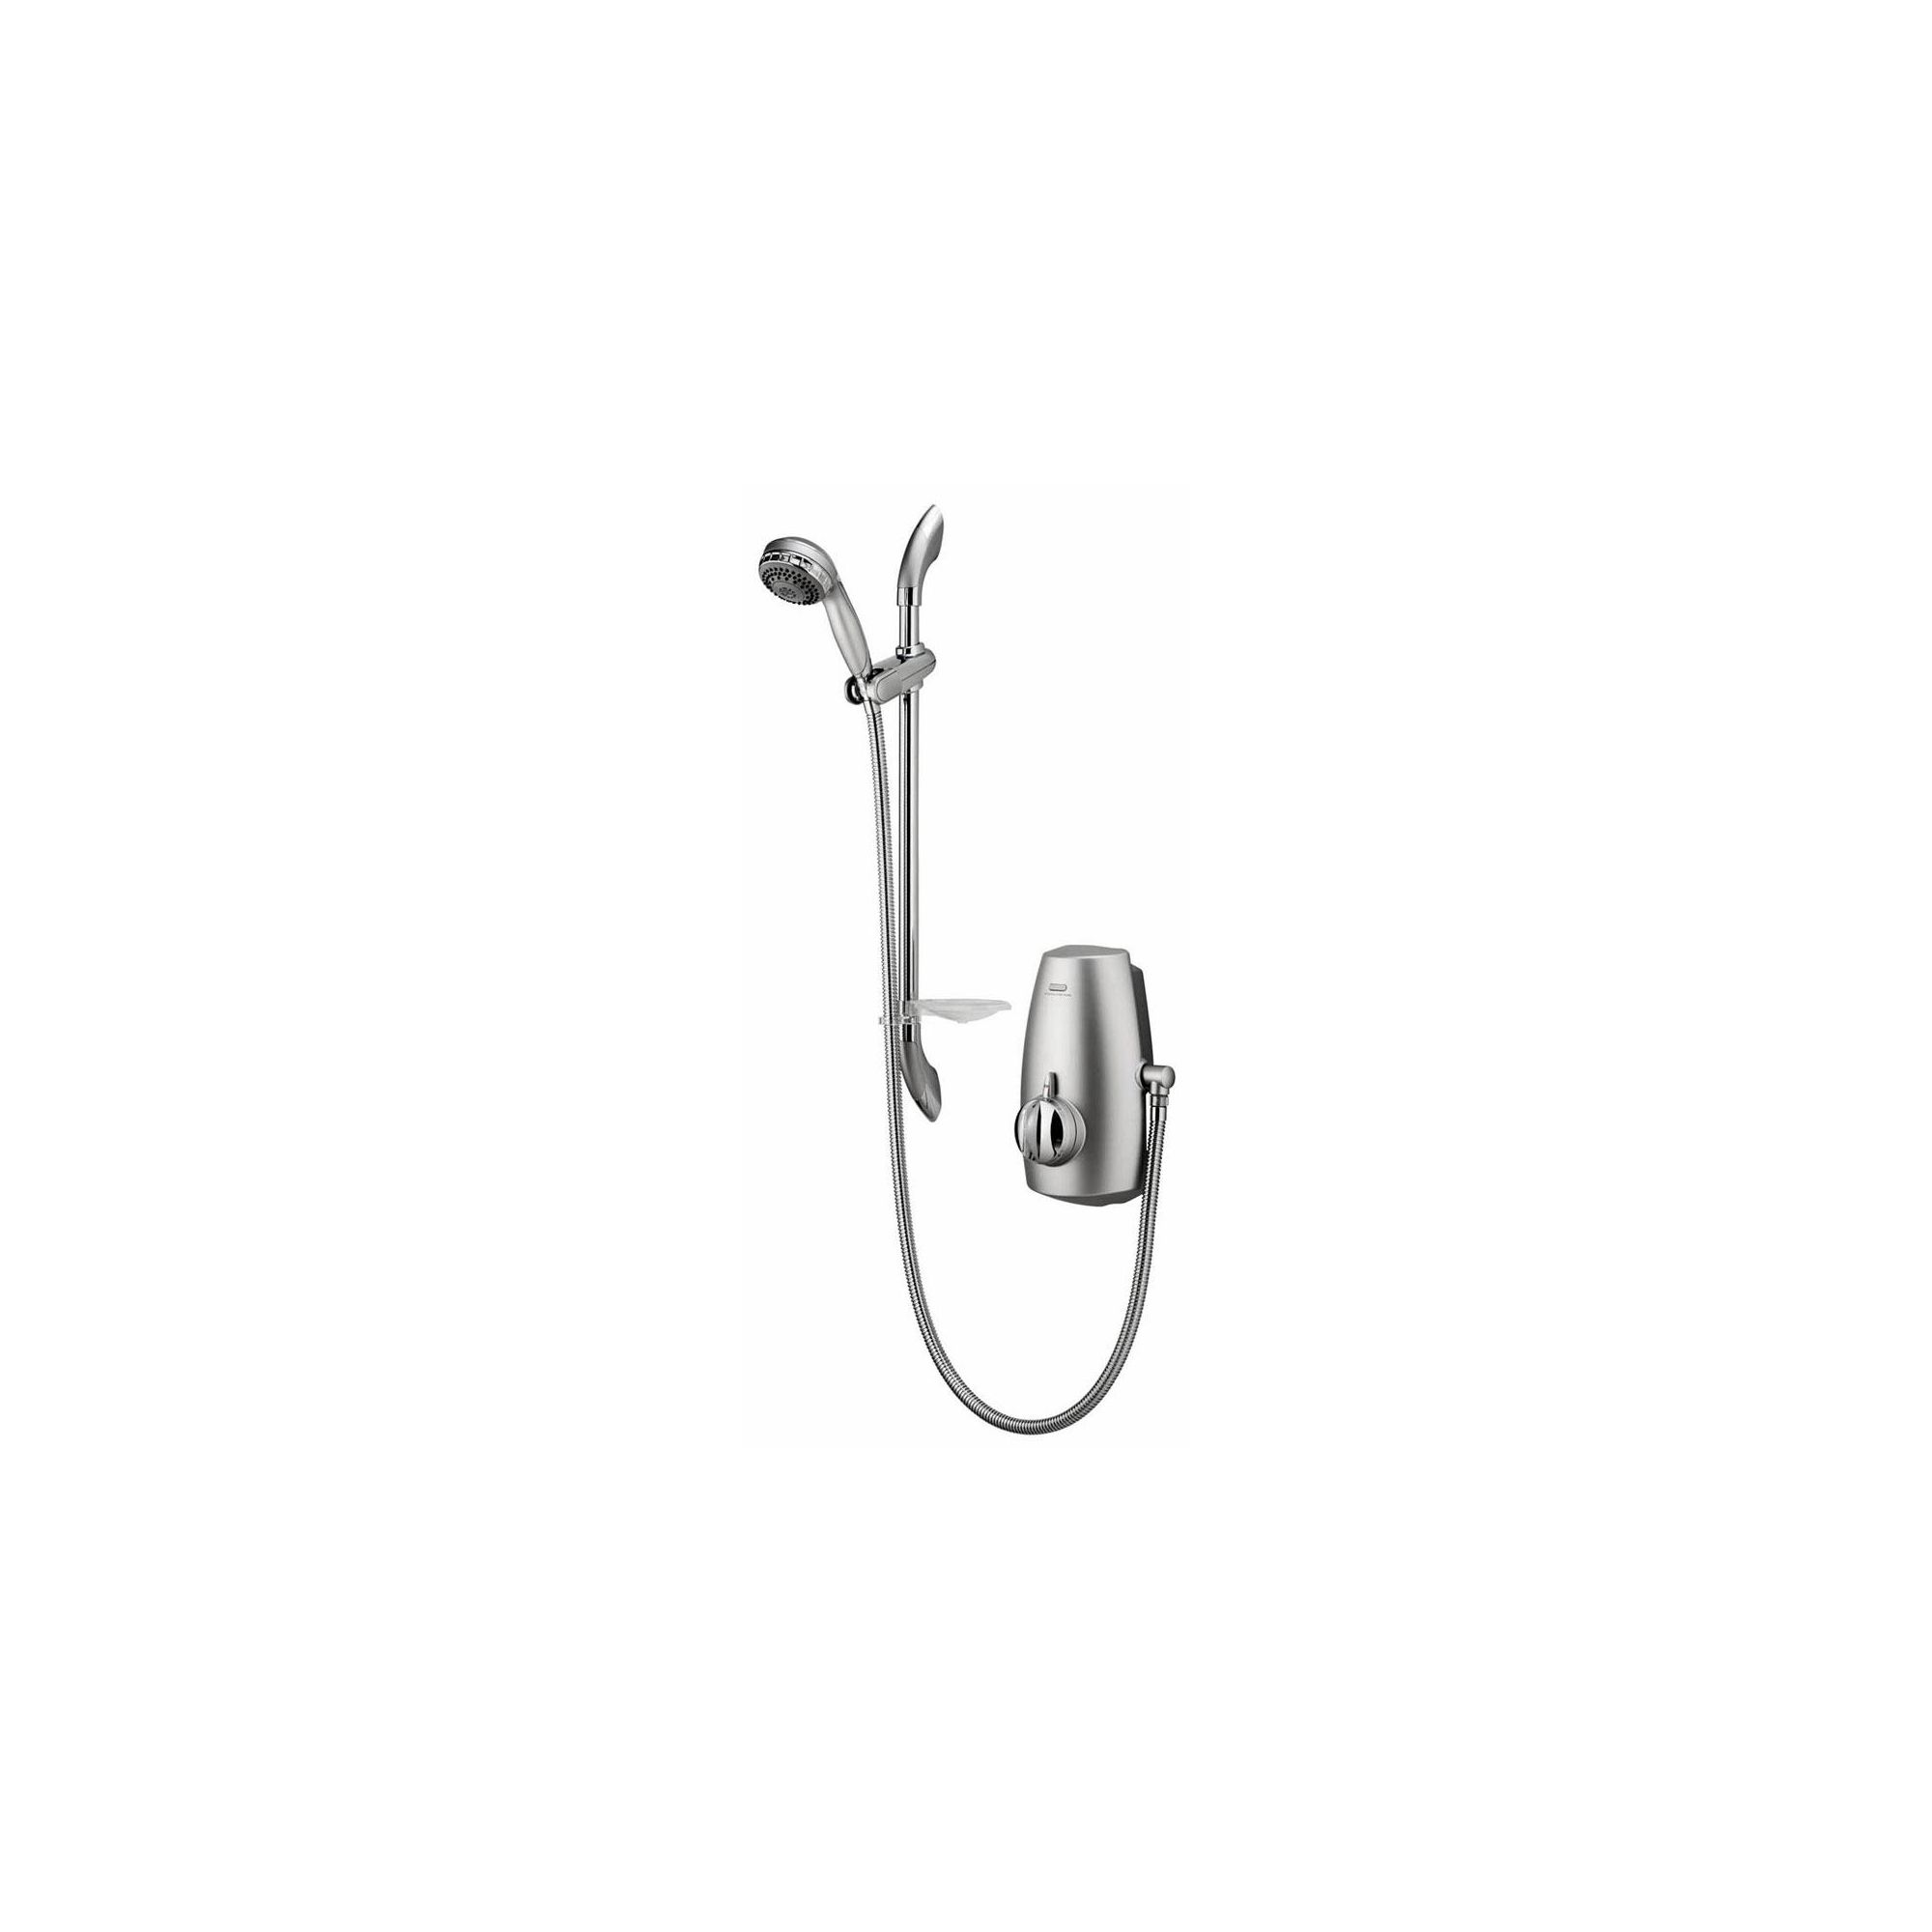 Aqualisa Aquastream Thermo Power Shower with Adjustable Head Chrome at Tescos Direct